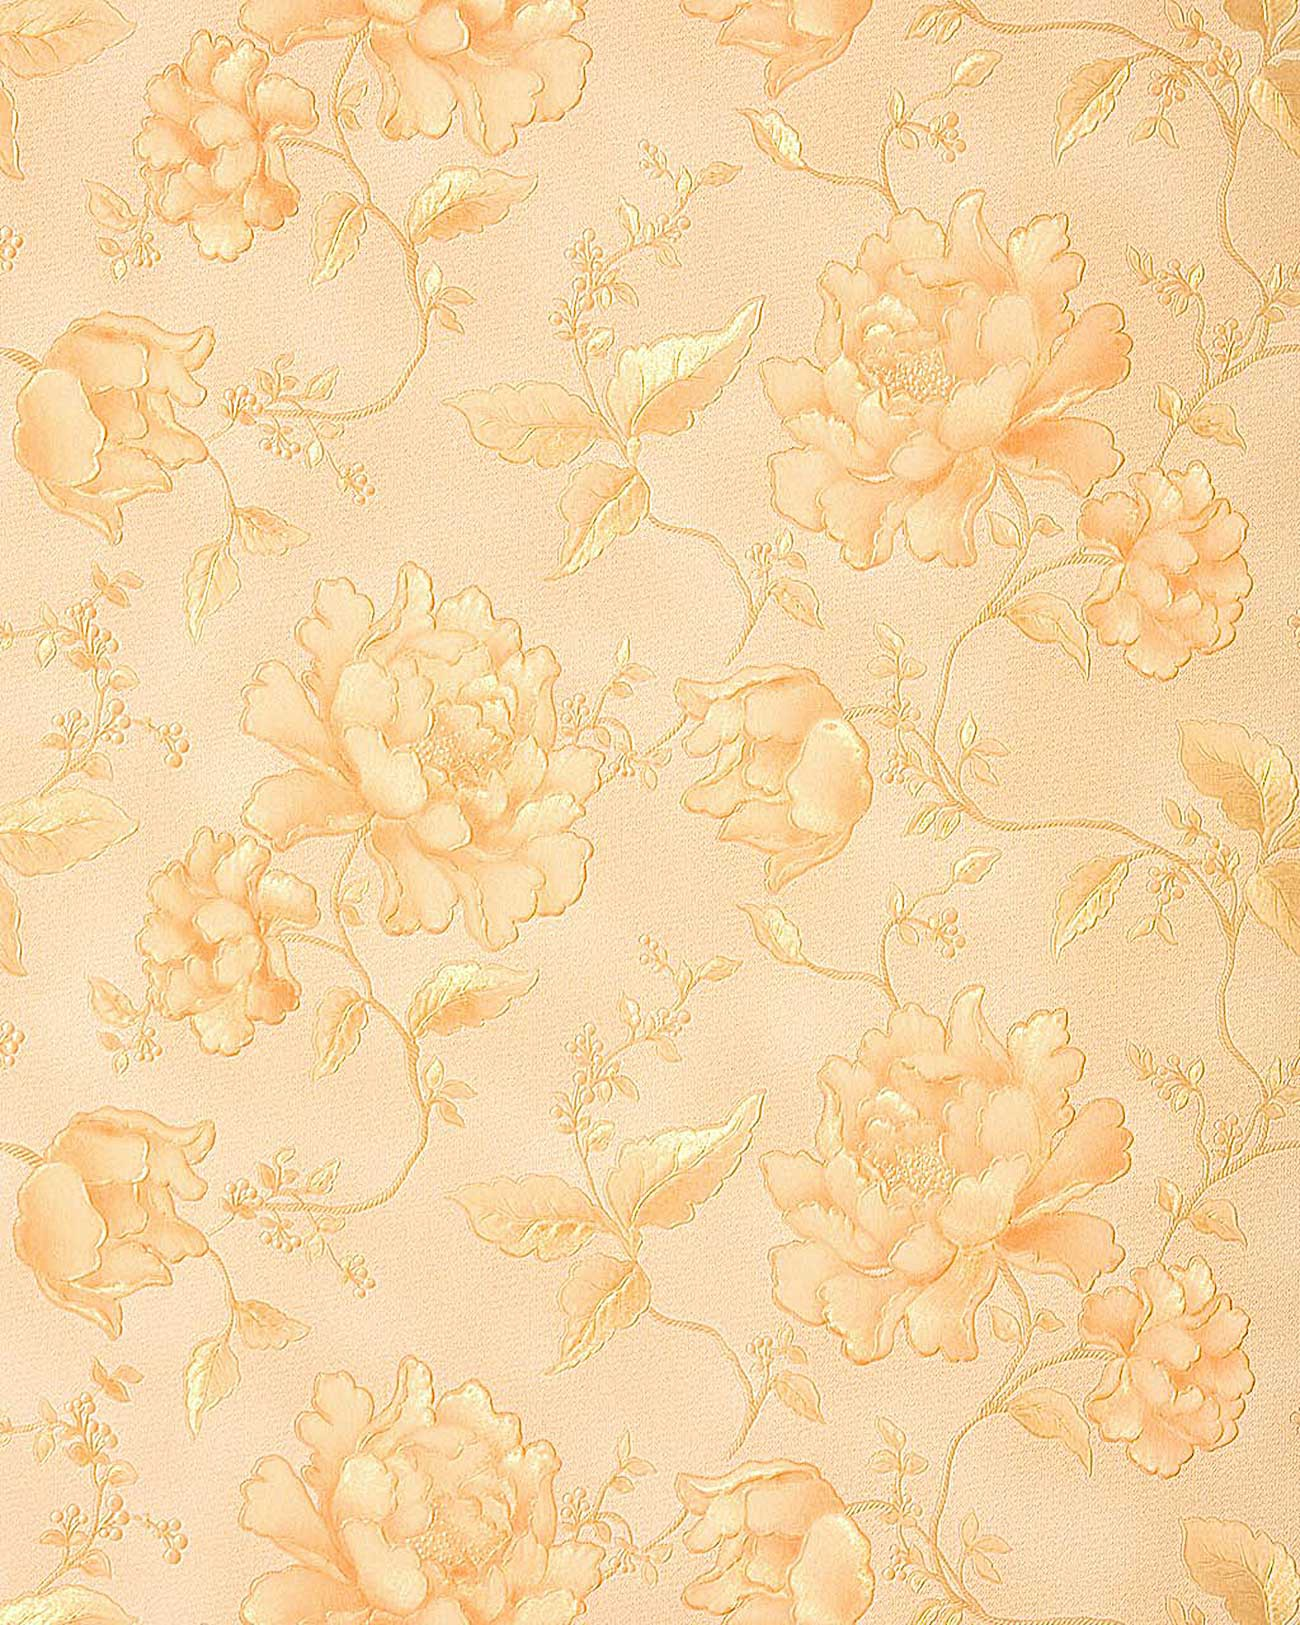 748 32 wallpaper heavyweight floral 3D look flower pastel yellow gold 1300x1625